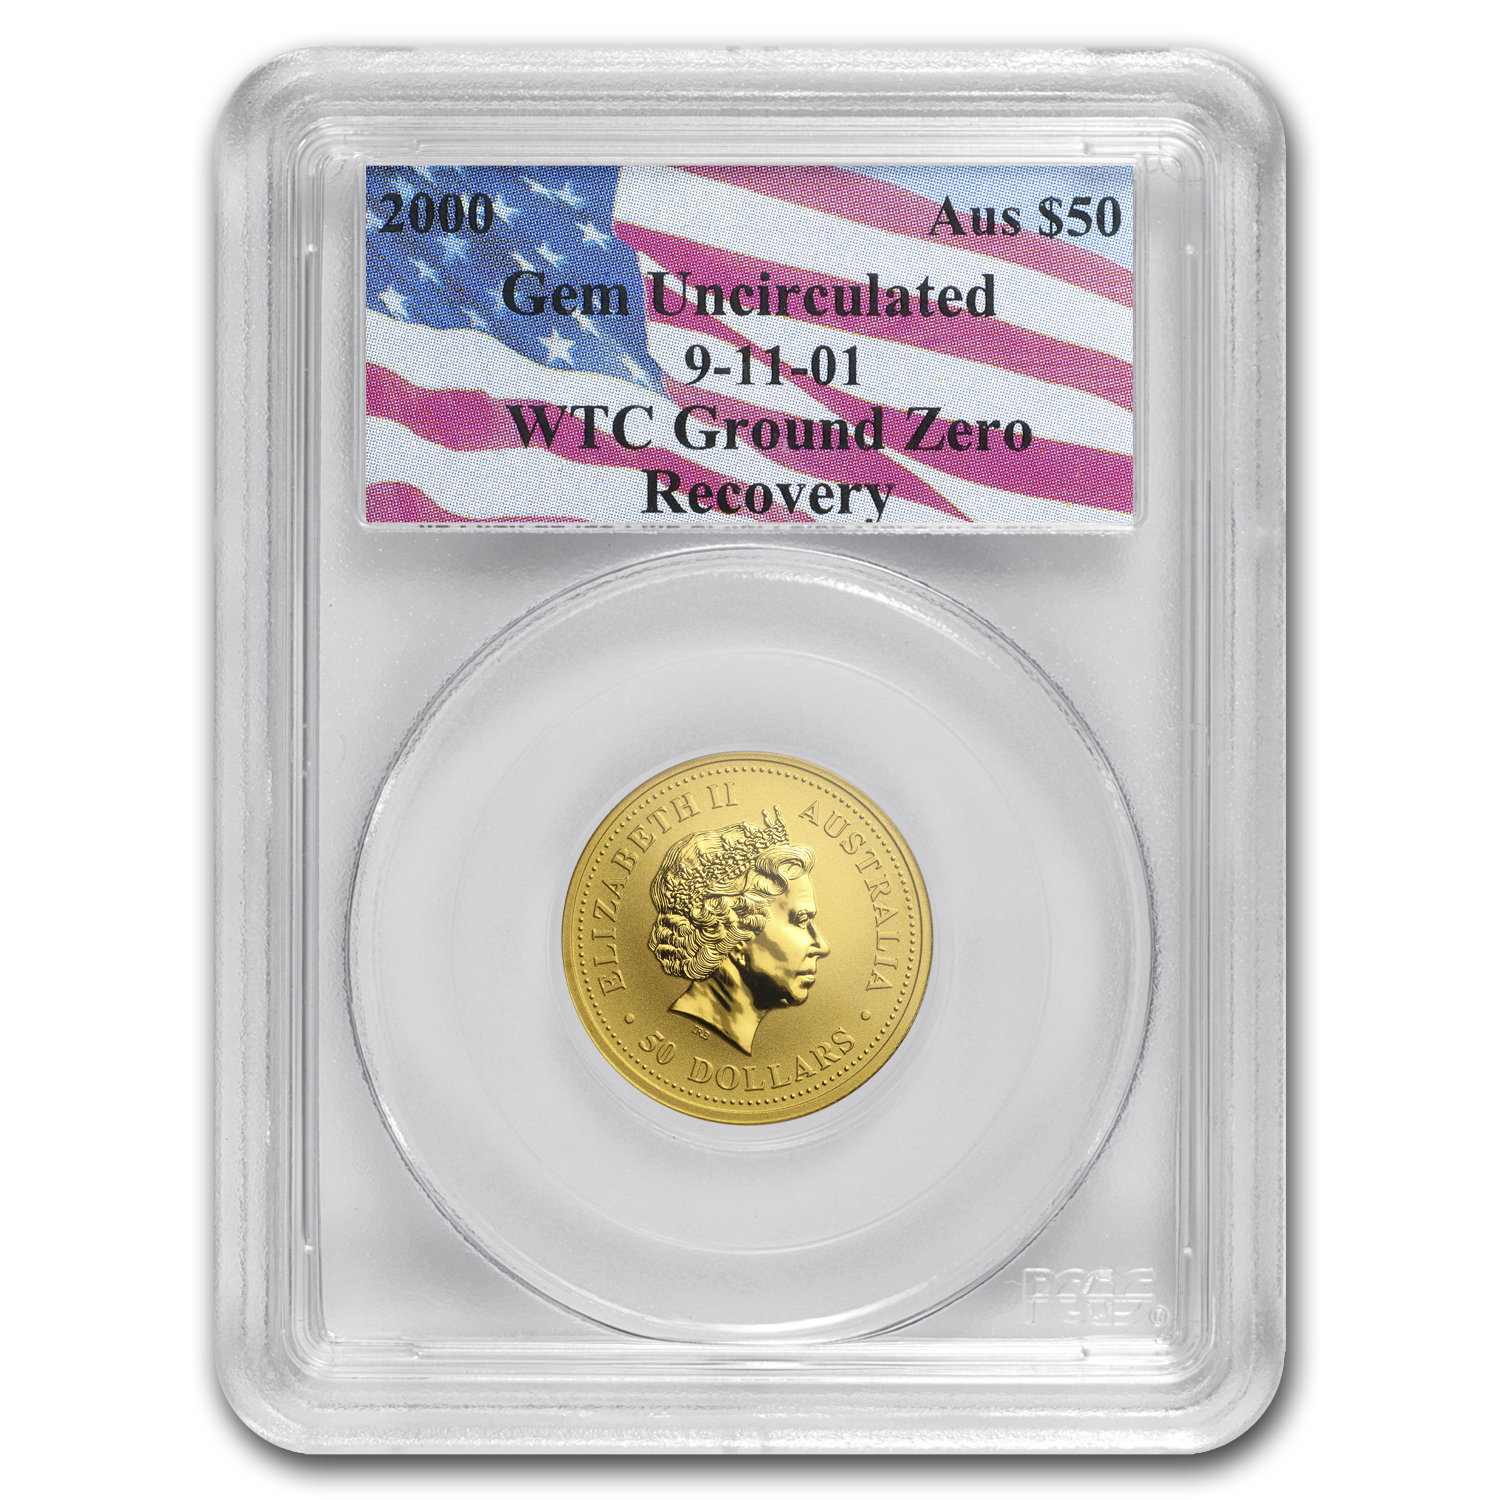 2000 Australia 1/2 oz Gold Nugget Gem Unc PCGS (WTC Ground Zero)